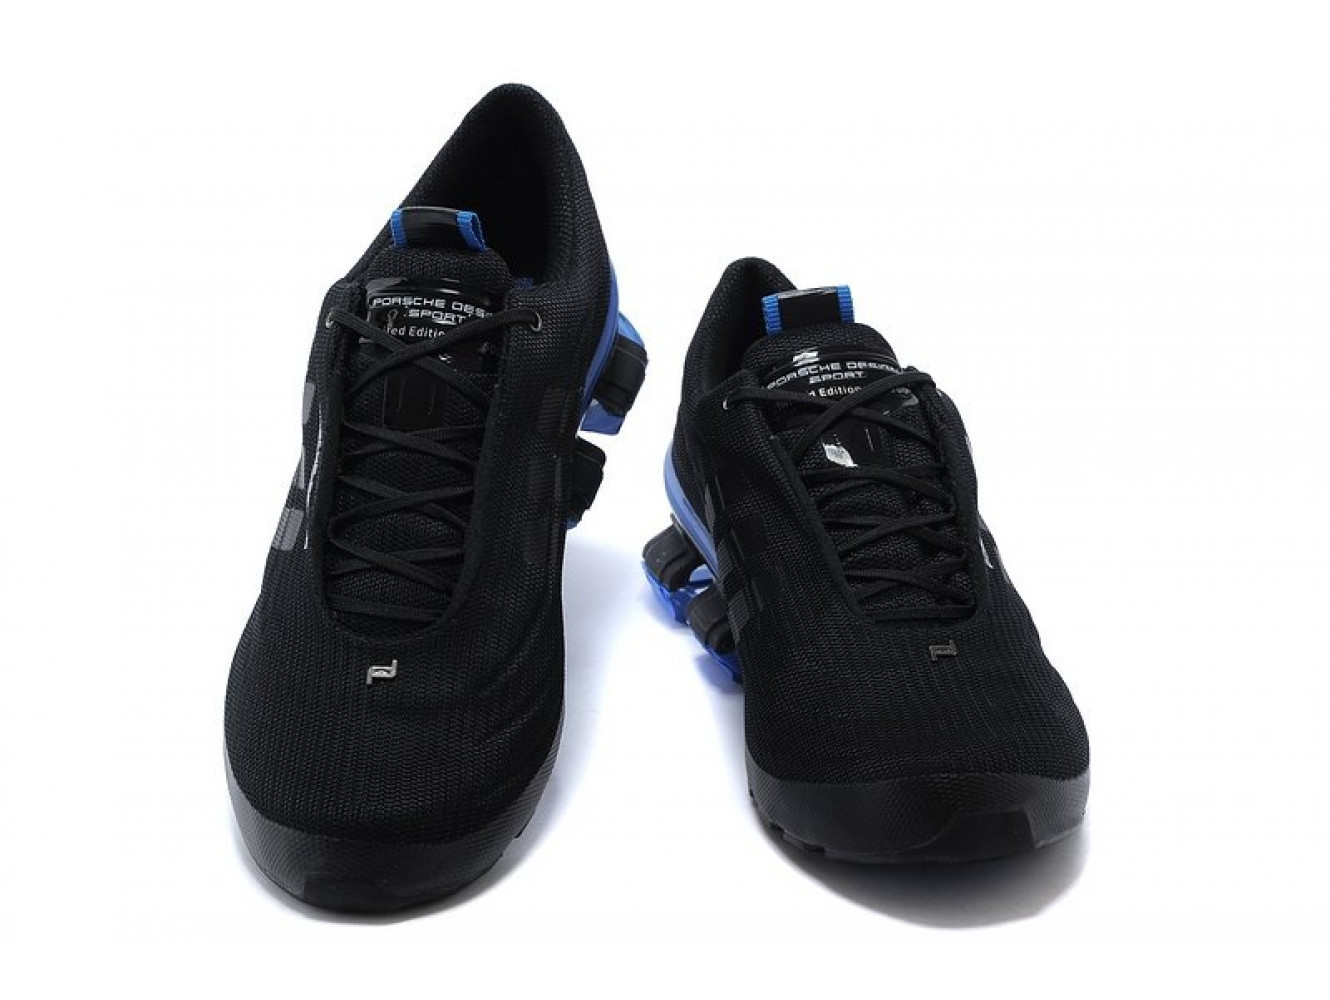 Adidas Porsche Design Bounce S4 (Black/Blue) (001)